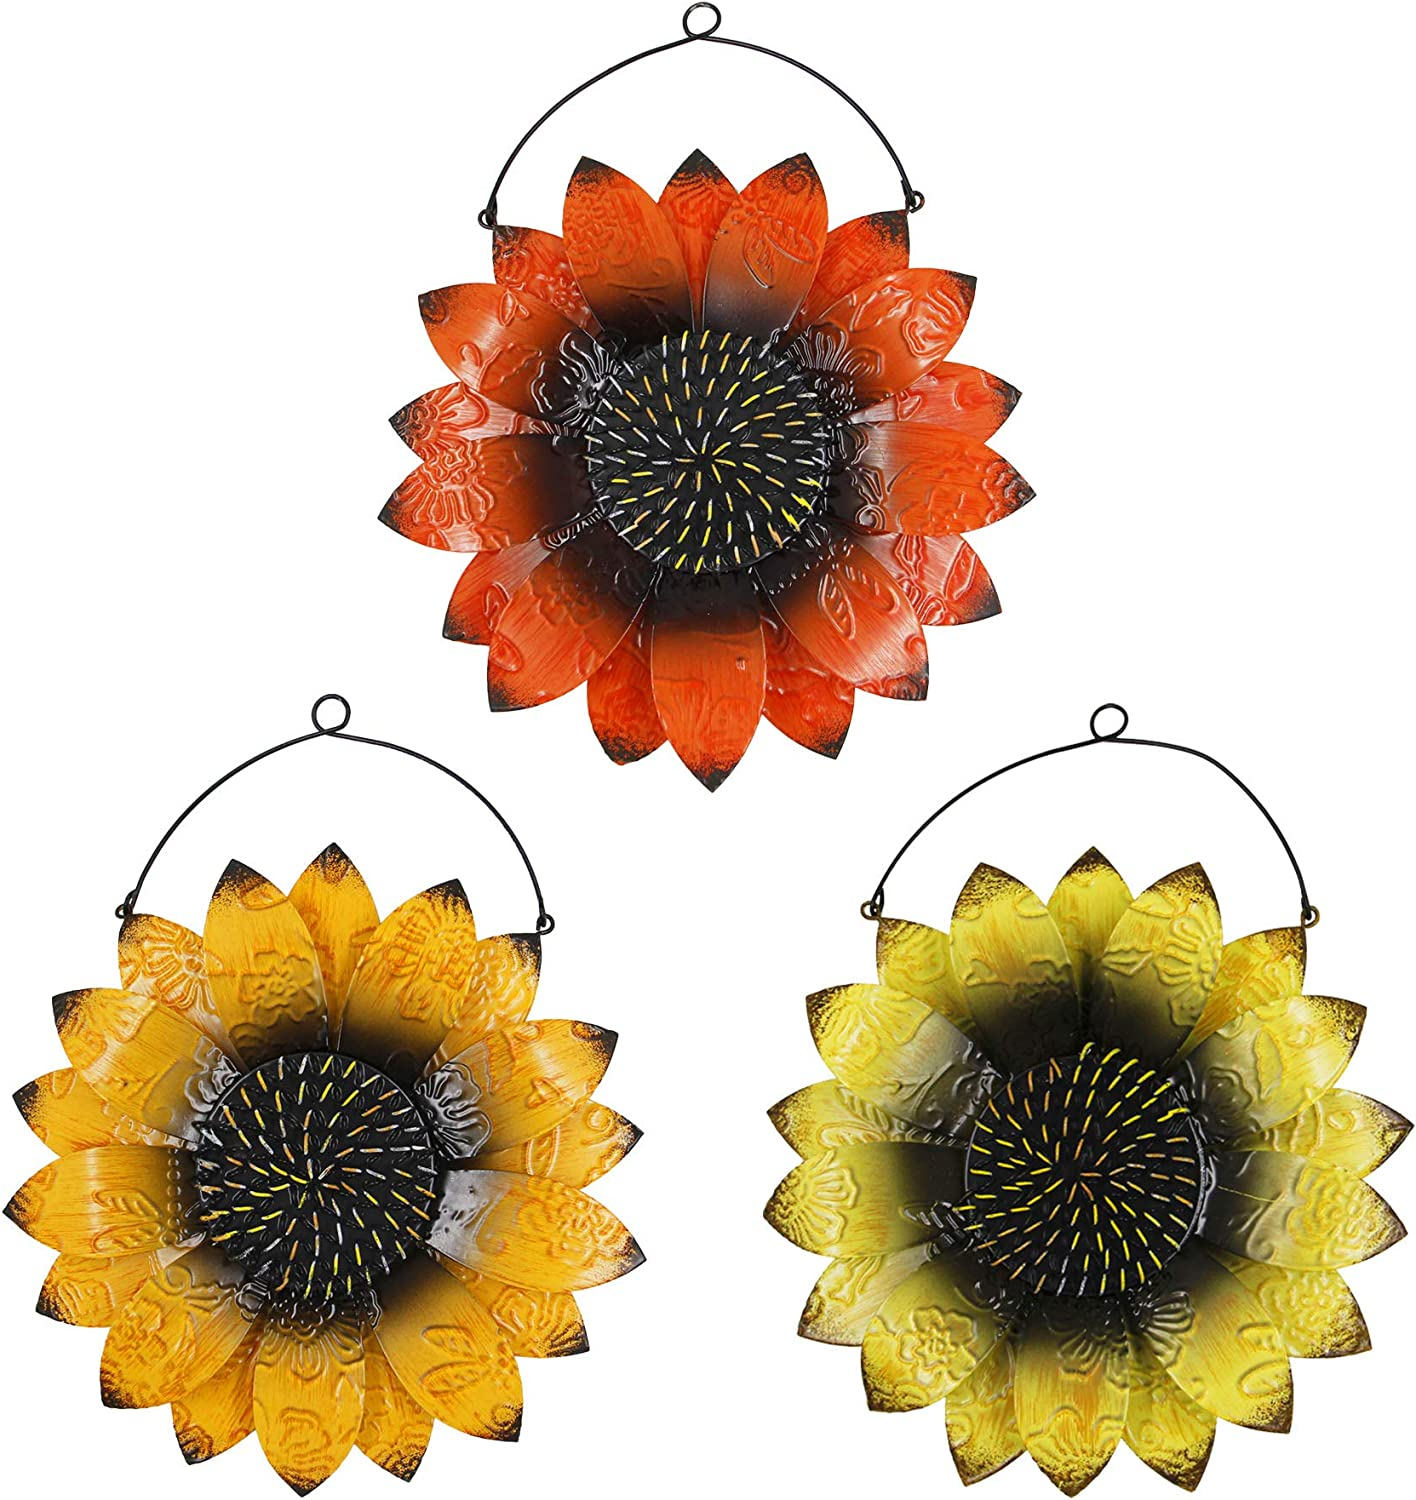 Juegoal 3 Pack Metal Flower Wall Art Inspirational Wall Sunflower Decor Sculpture Hanging for Indoor Outdoor Home Bedroom Living Room Office Garden, Red, Yellow and Orange with 8.7 Inch Each